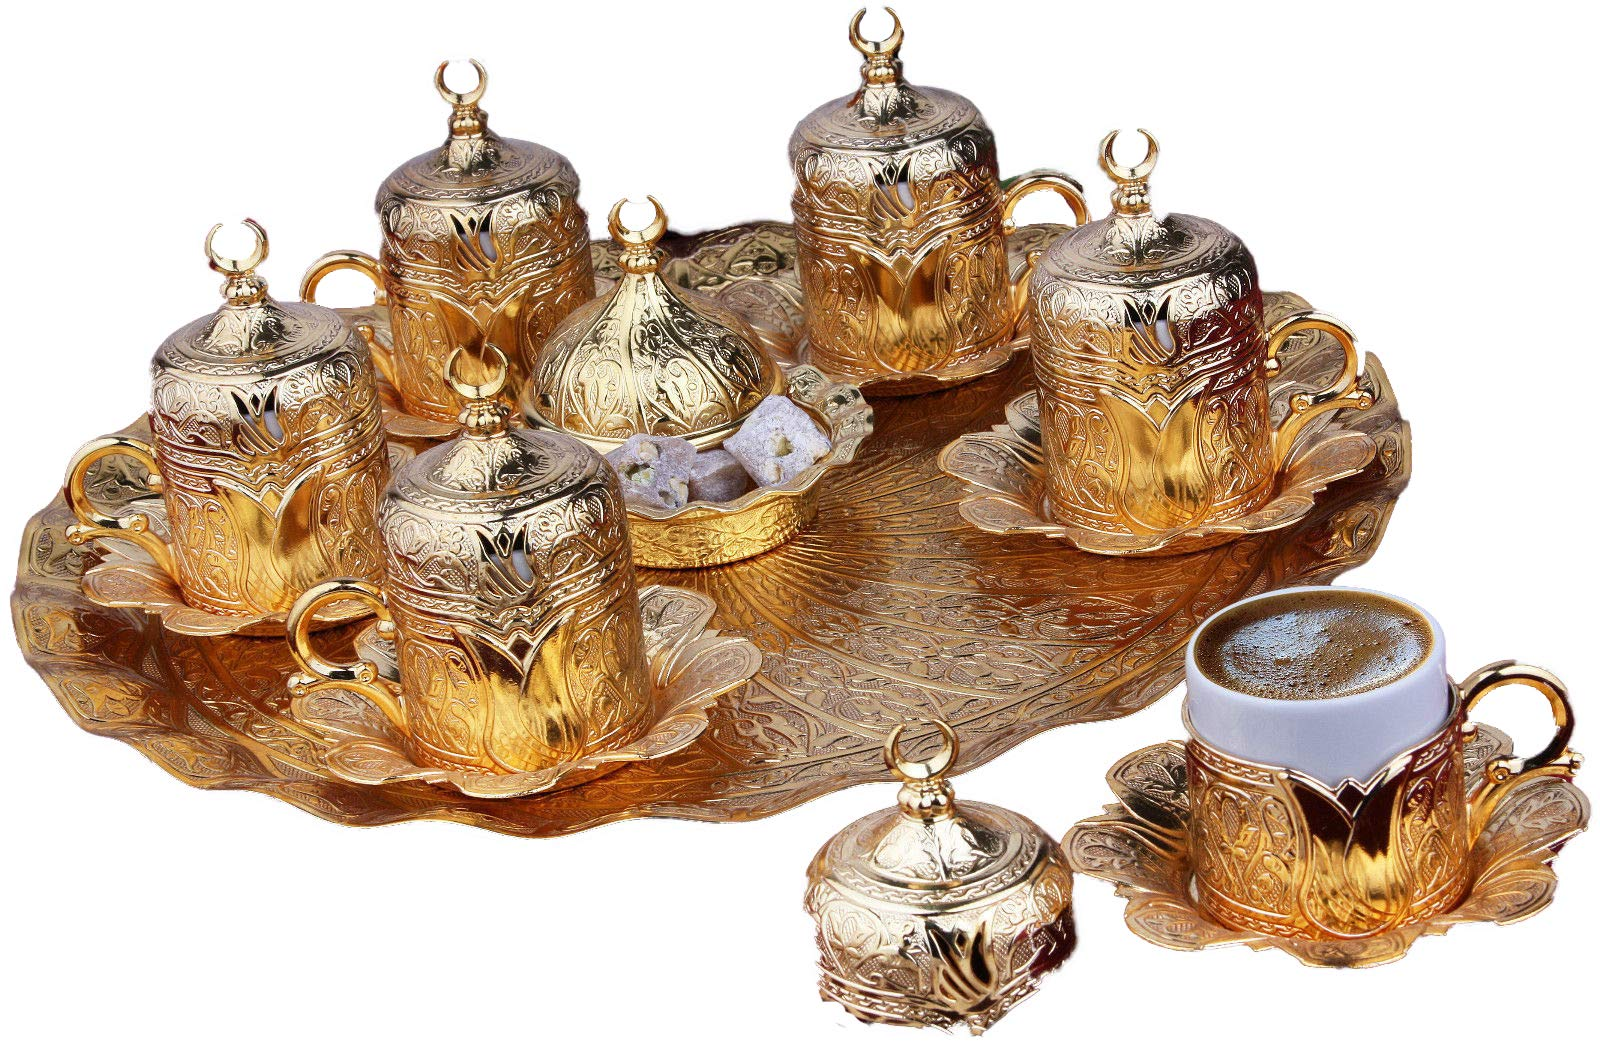 Gold Case Gold plated METAL Turkish, Arabic, Greek and Espresso Coffee Set for 6 - Made in Turkey - 27 pieced set with Bowl, Gold